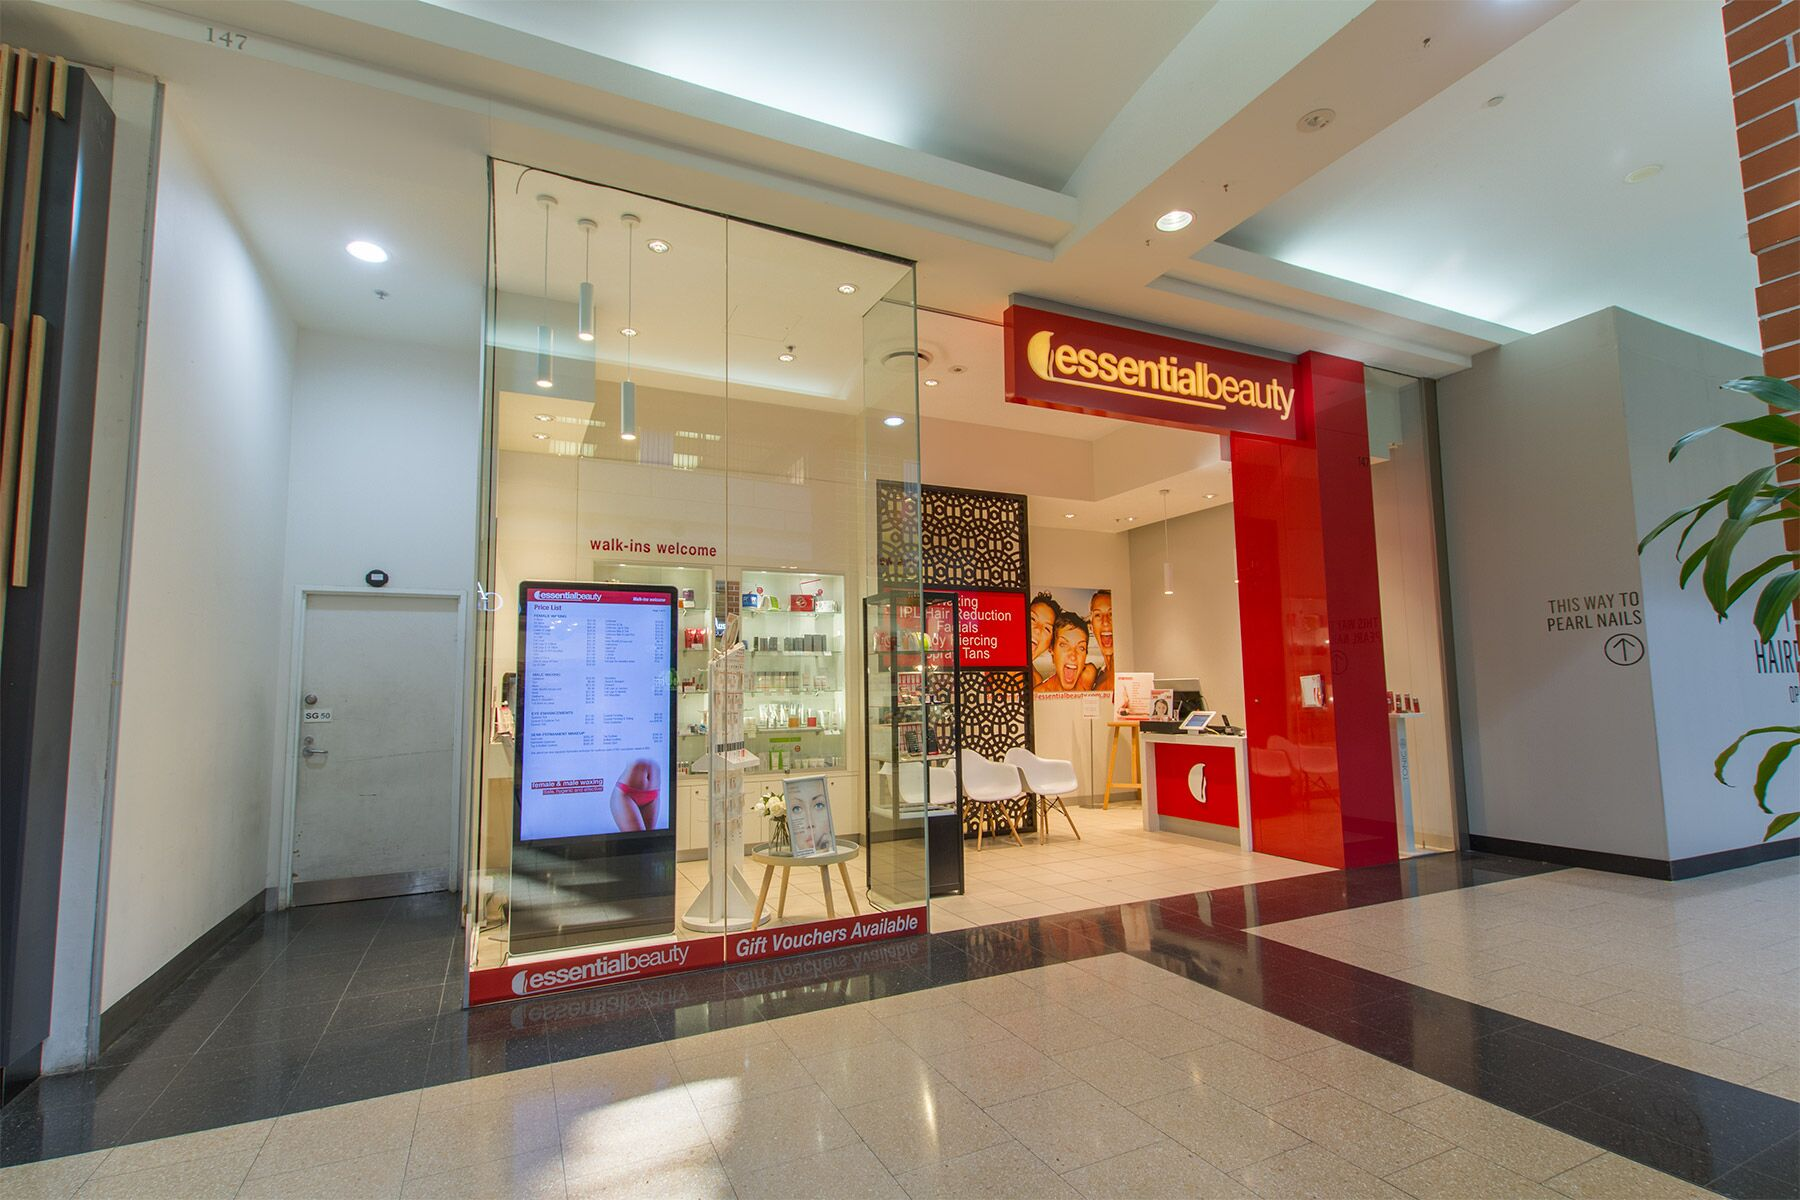 erina-fair-shopping-centre-essential-beauty-franchise-opportunity-1